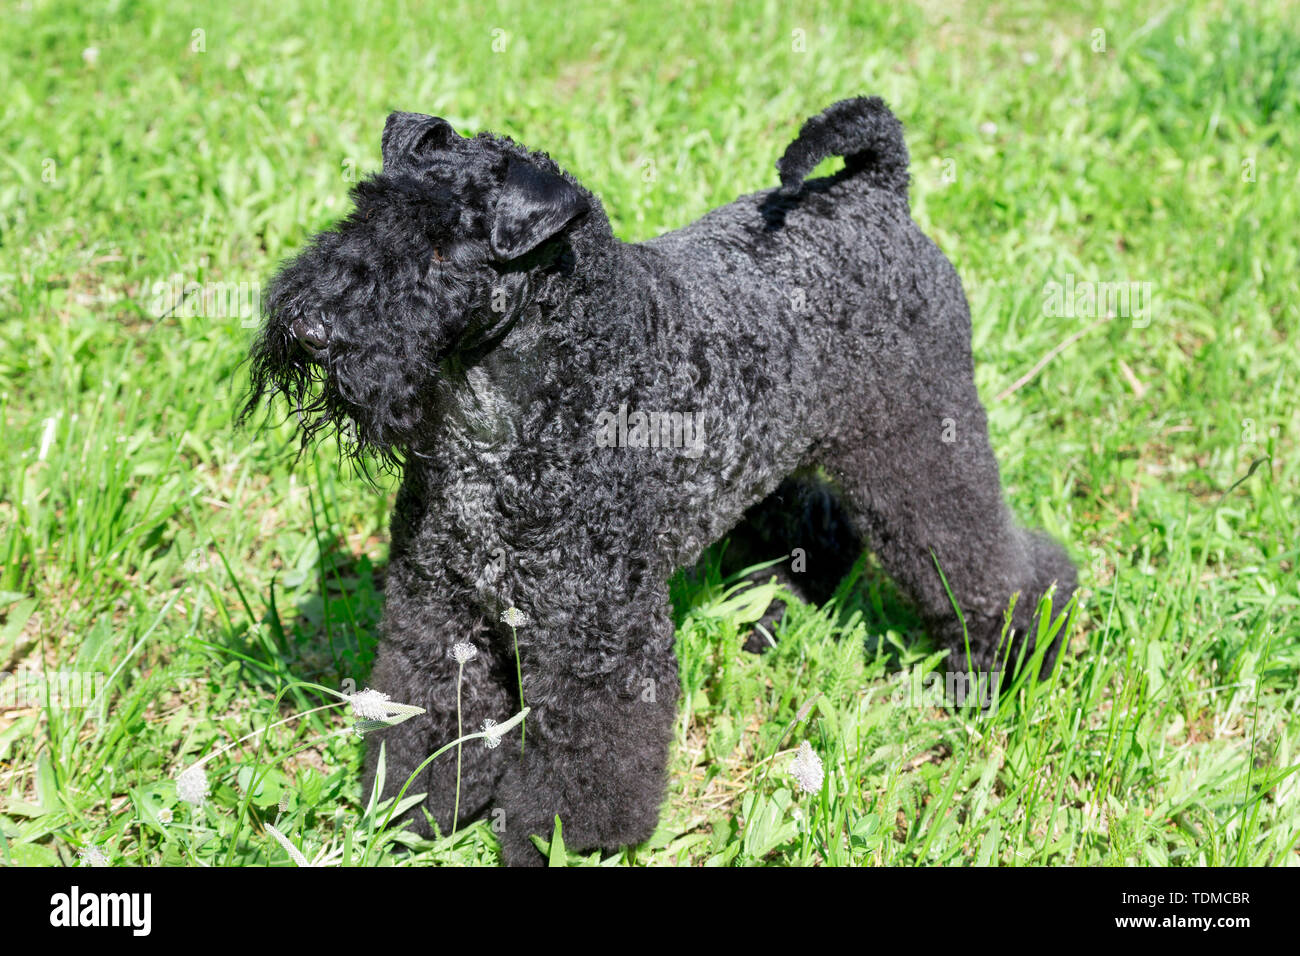 Irish blue terrier is standing on a green grass in the park. Pet animals. Purebred dog. - Stock Image